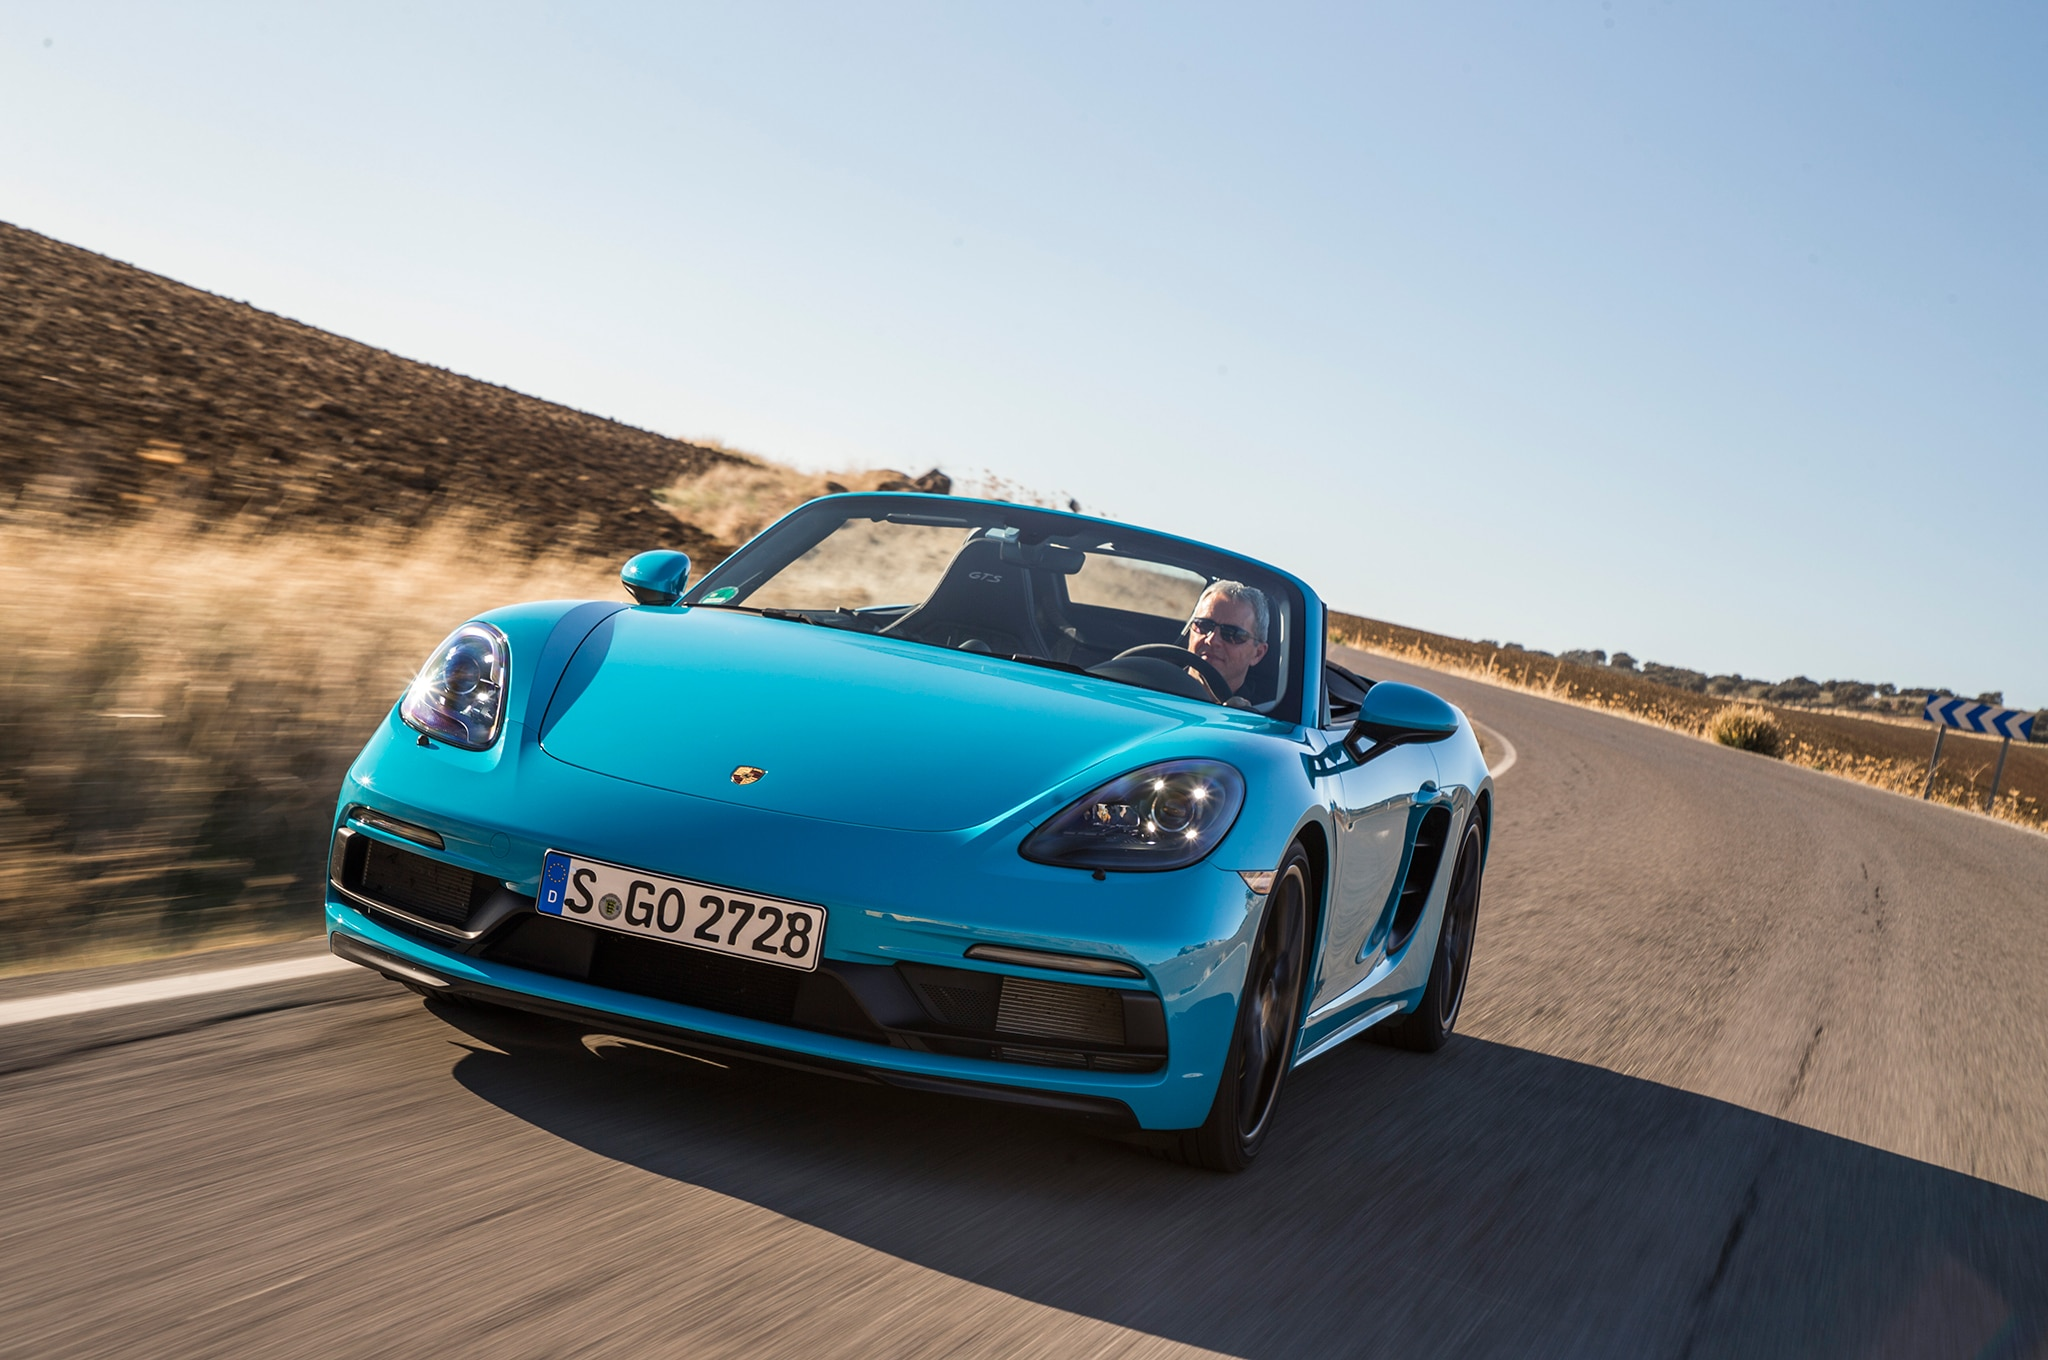 2018 Porsche 718 Boxster GTS Front Three Quarter In Motion 04